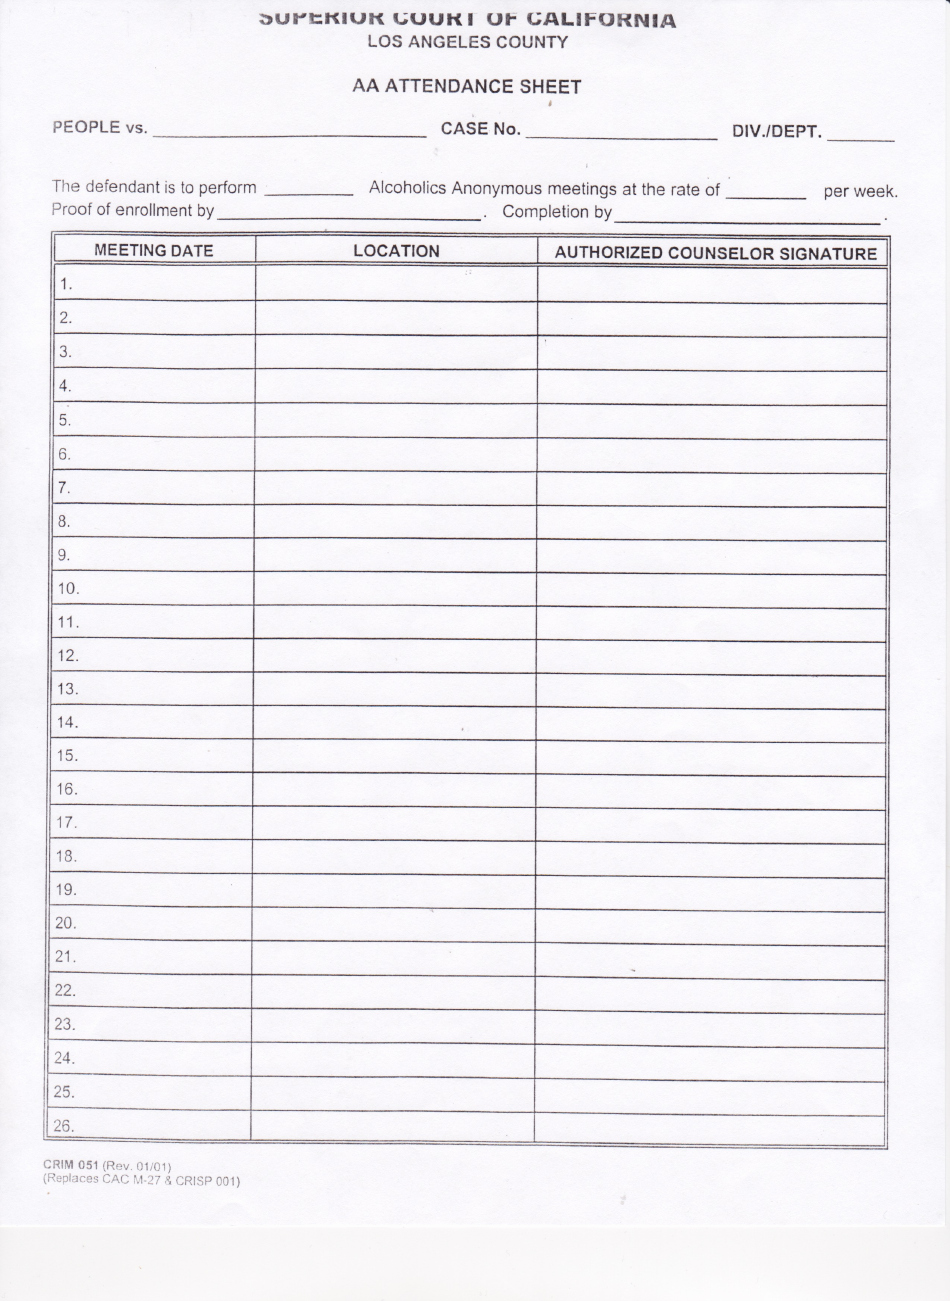 Aa Sign In Sheet Lovely Aa Meeting Sign In Sheet for Court